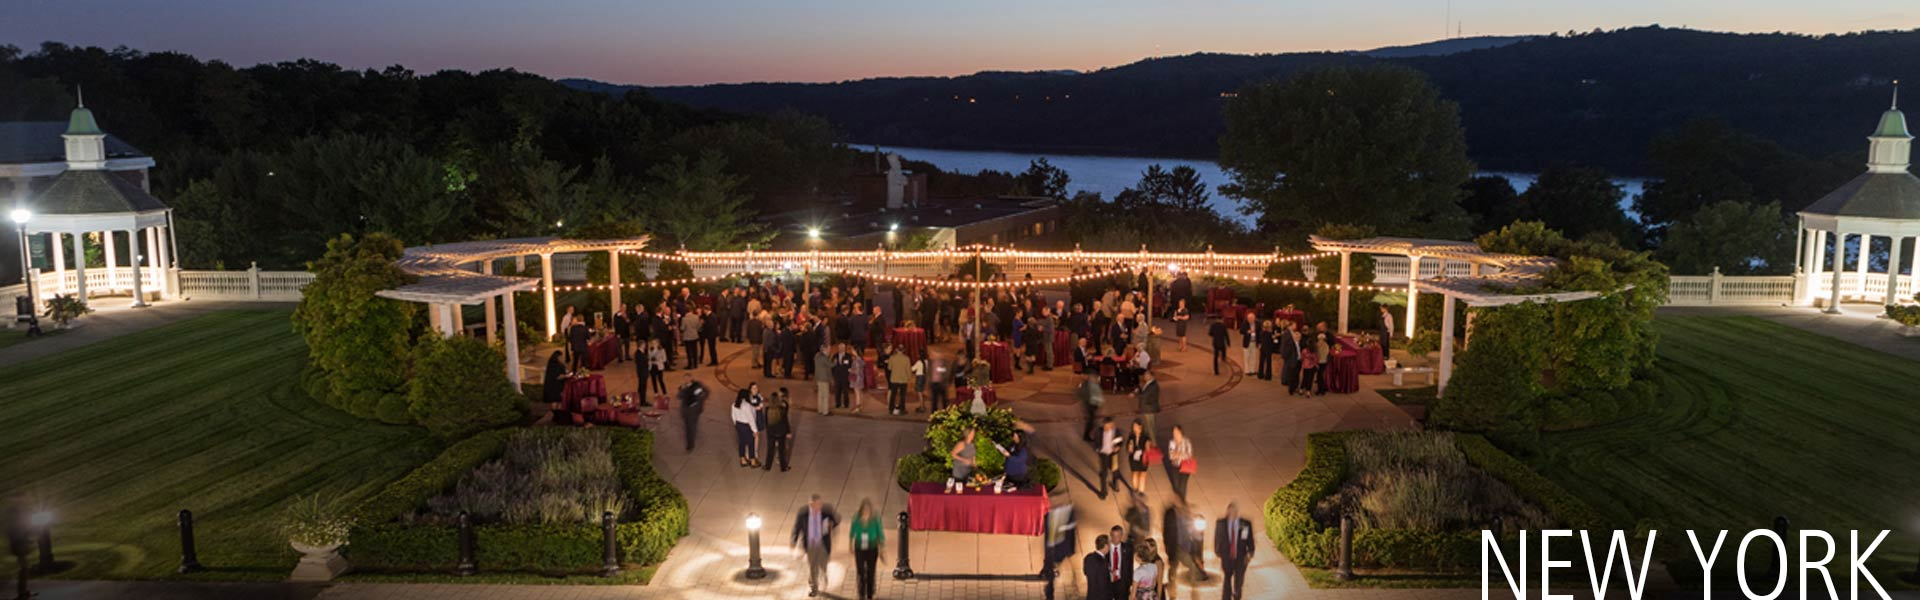 Outdoor event on Anton Plaza overlooking the Hudson River, an outside event venue on the campus of The Culinary Institute of America in Hyde Park, NY.